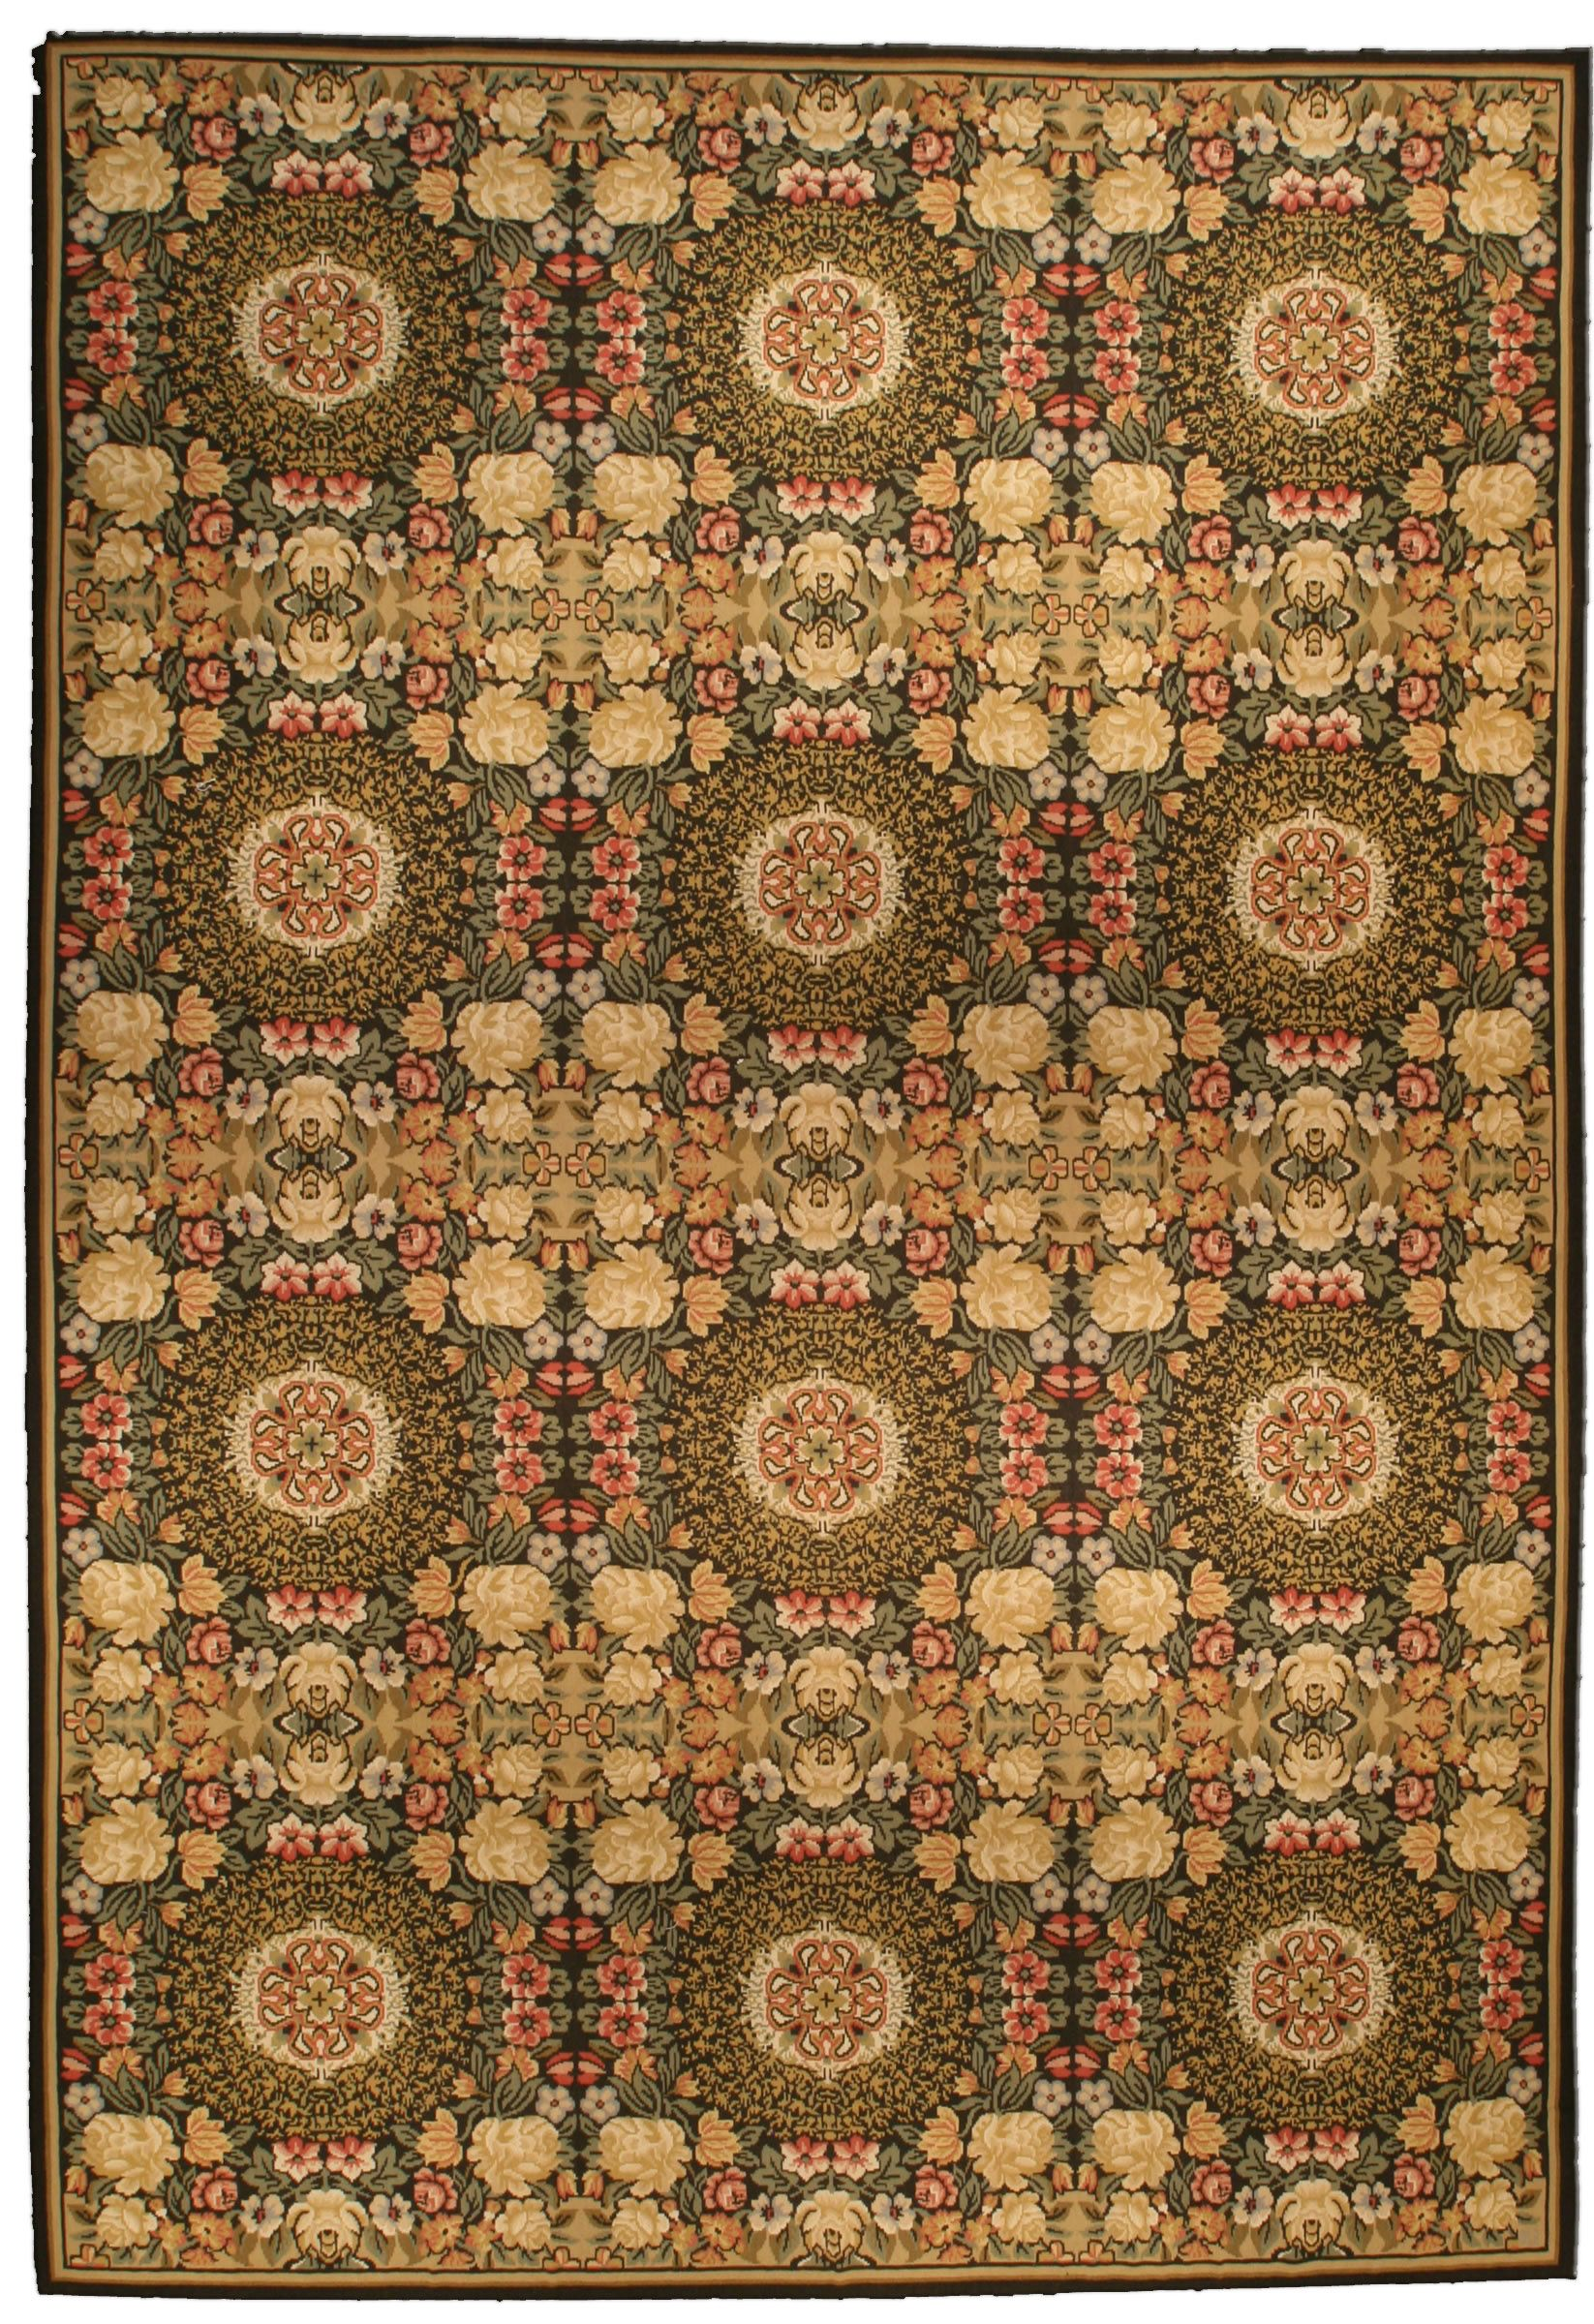 Extra Large Area Rugs Oversized Carpets For Sale Nyc Extra Large Area Rugs Rugs Carpet Sale